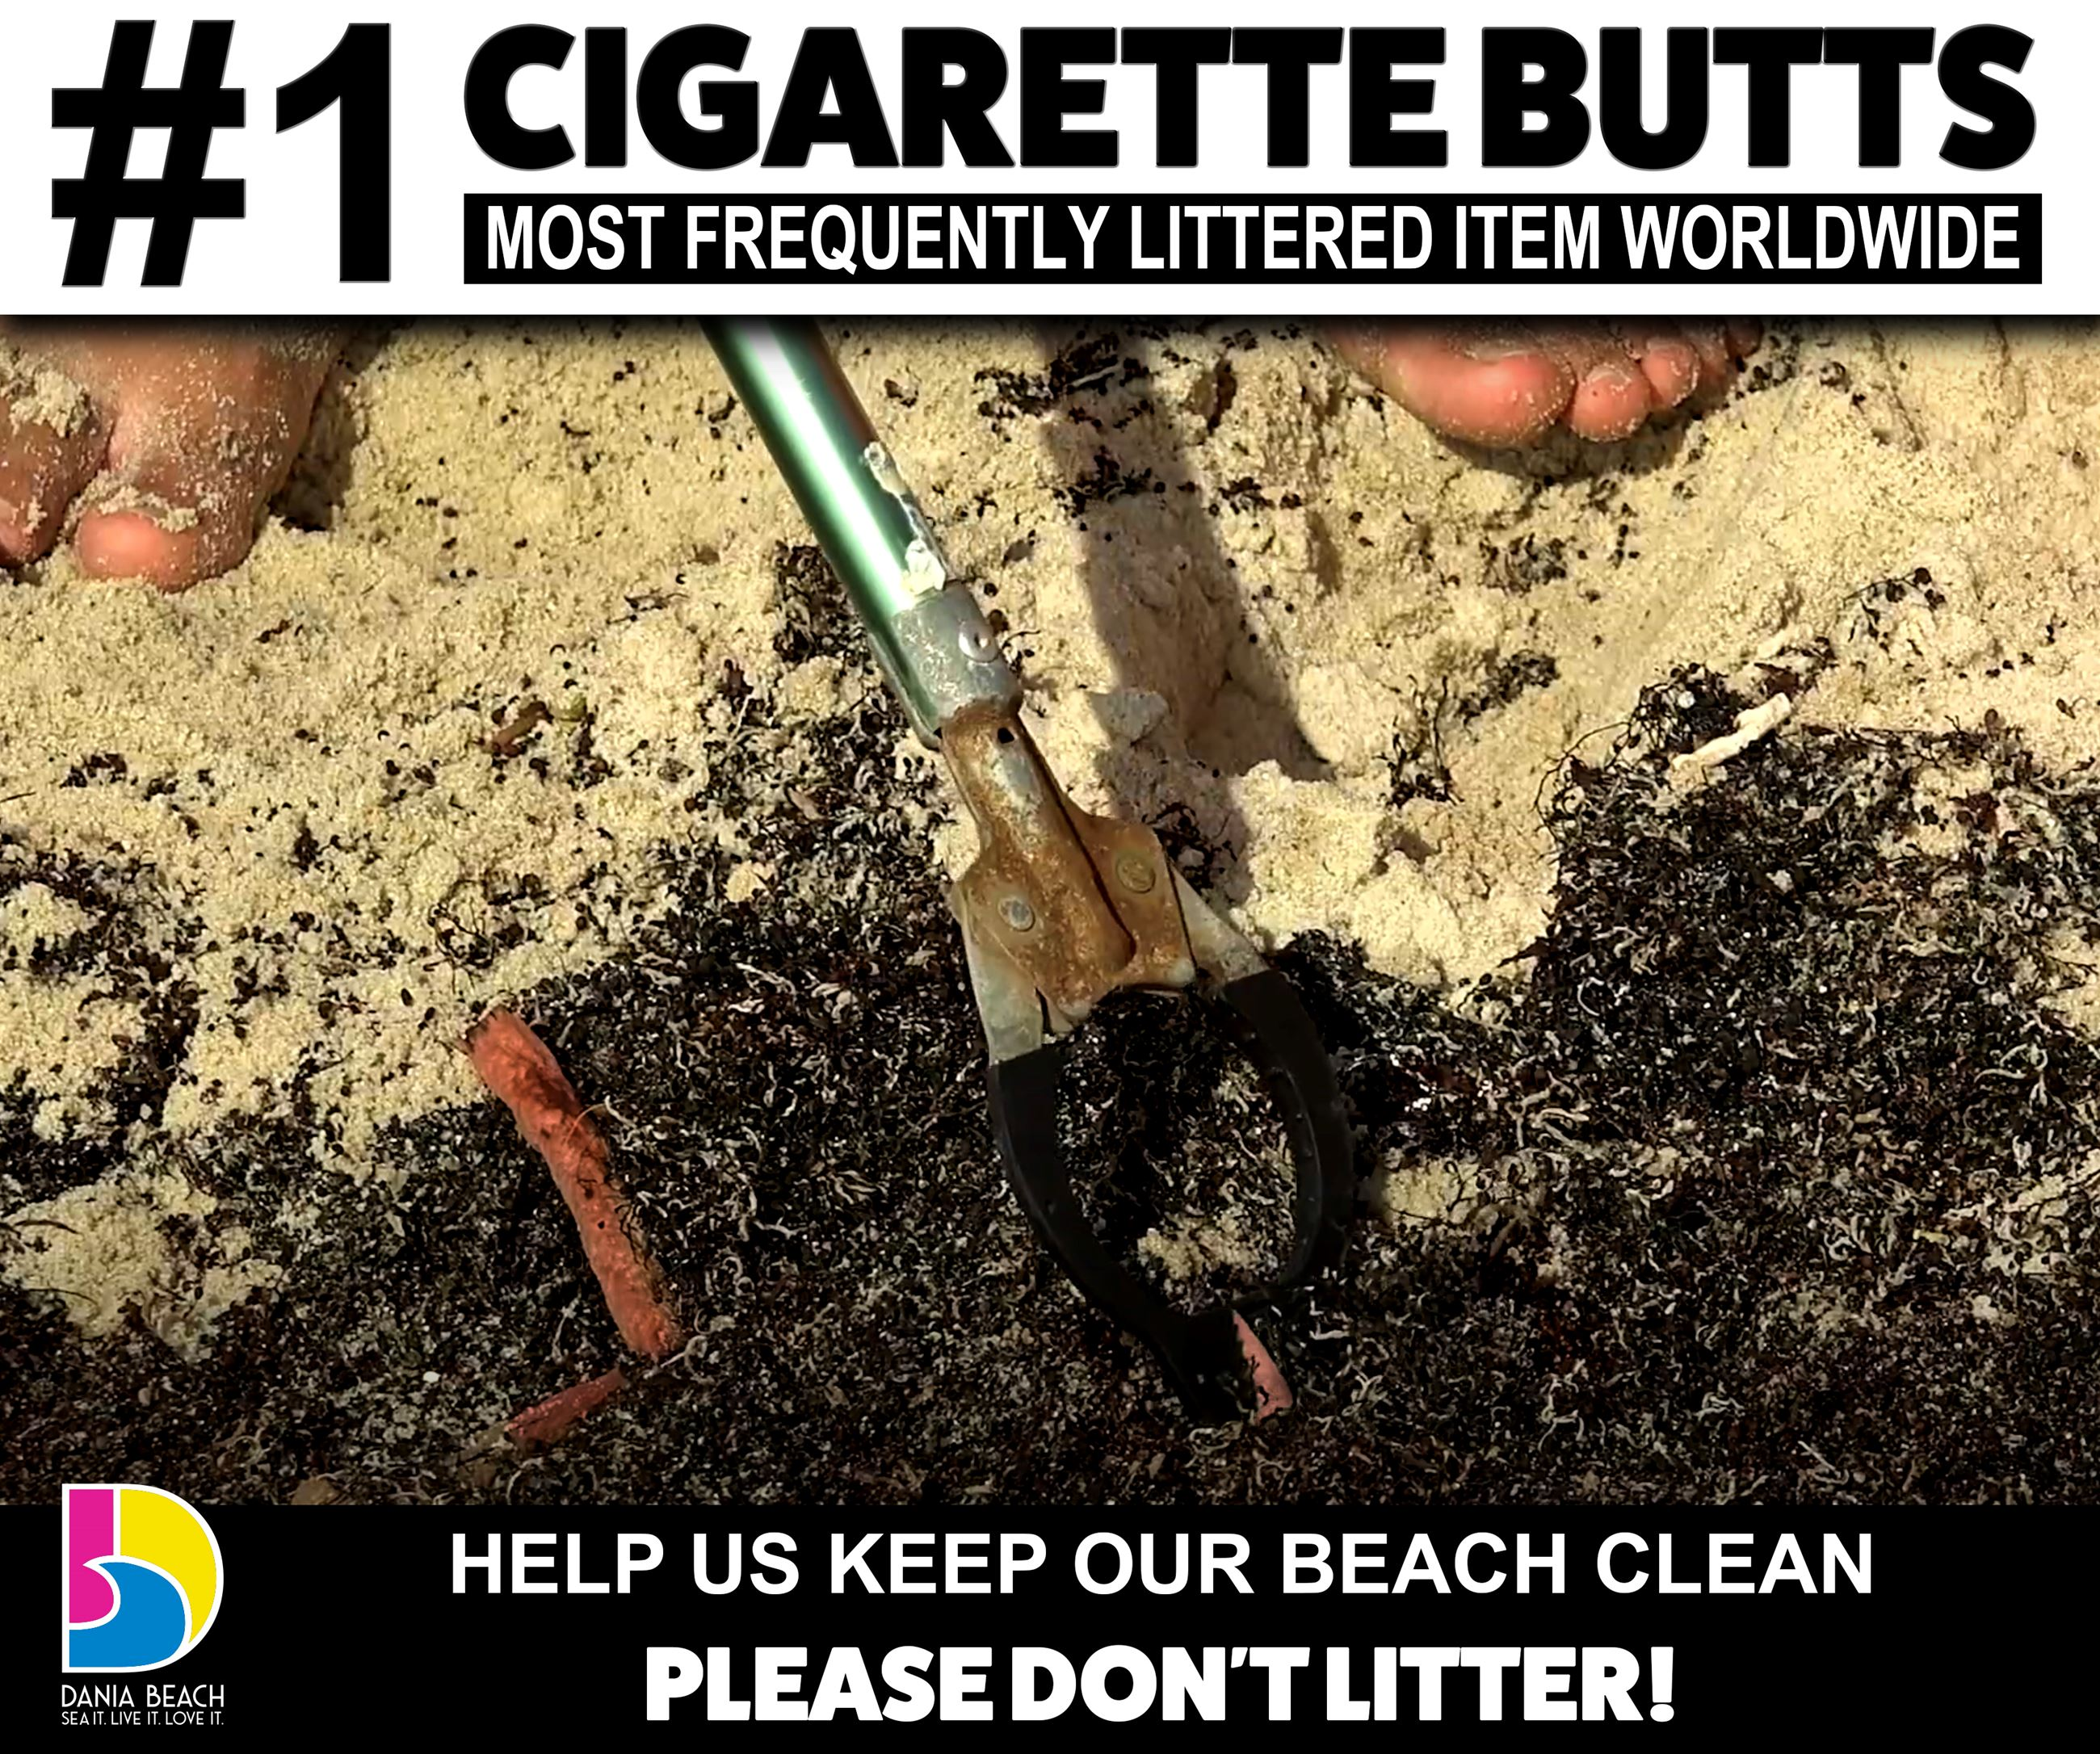 Do Not Litter Cigarette Butts on our beach - Dania Beach Florida